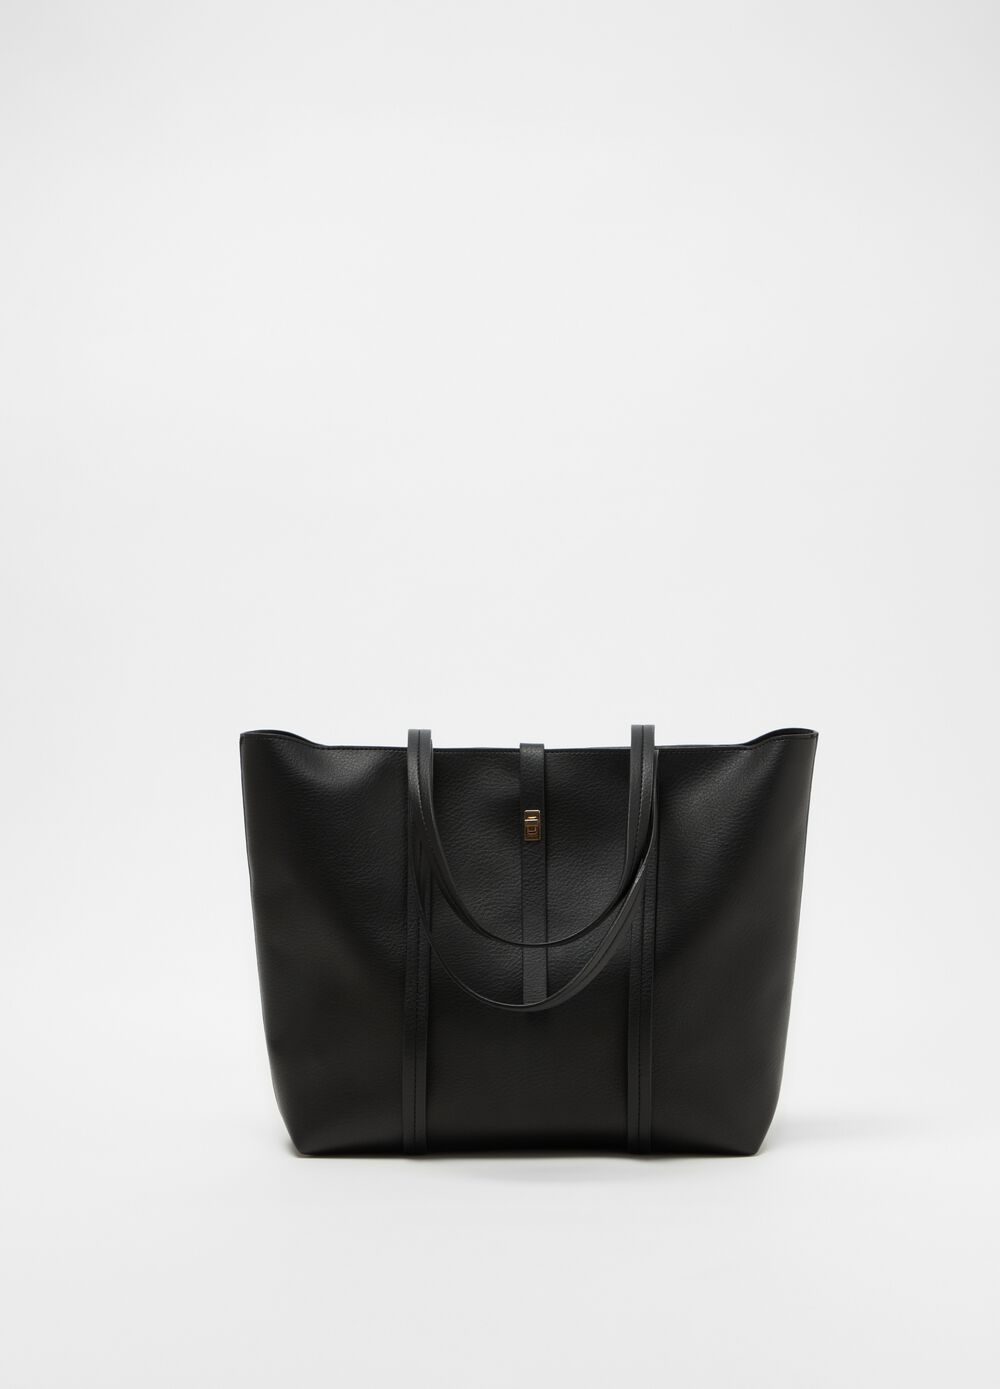 Solid colour textured leather-look bag